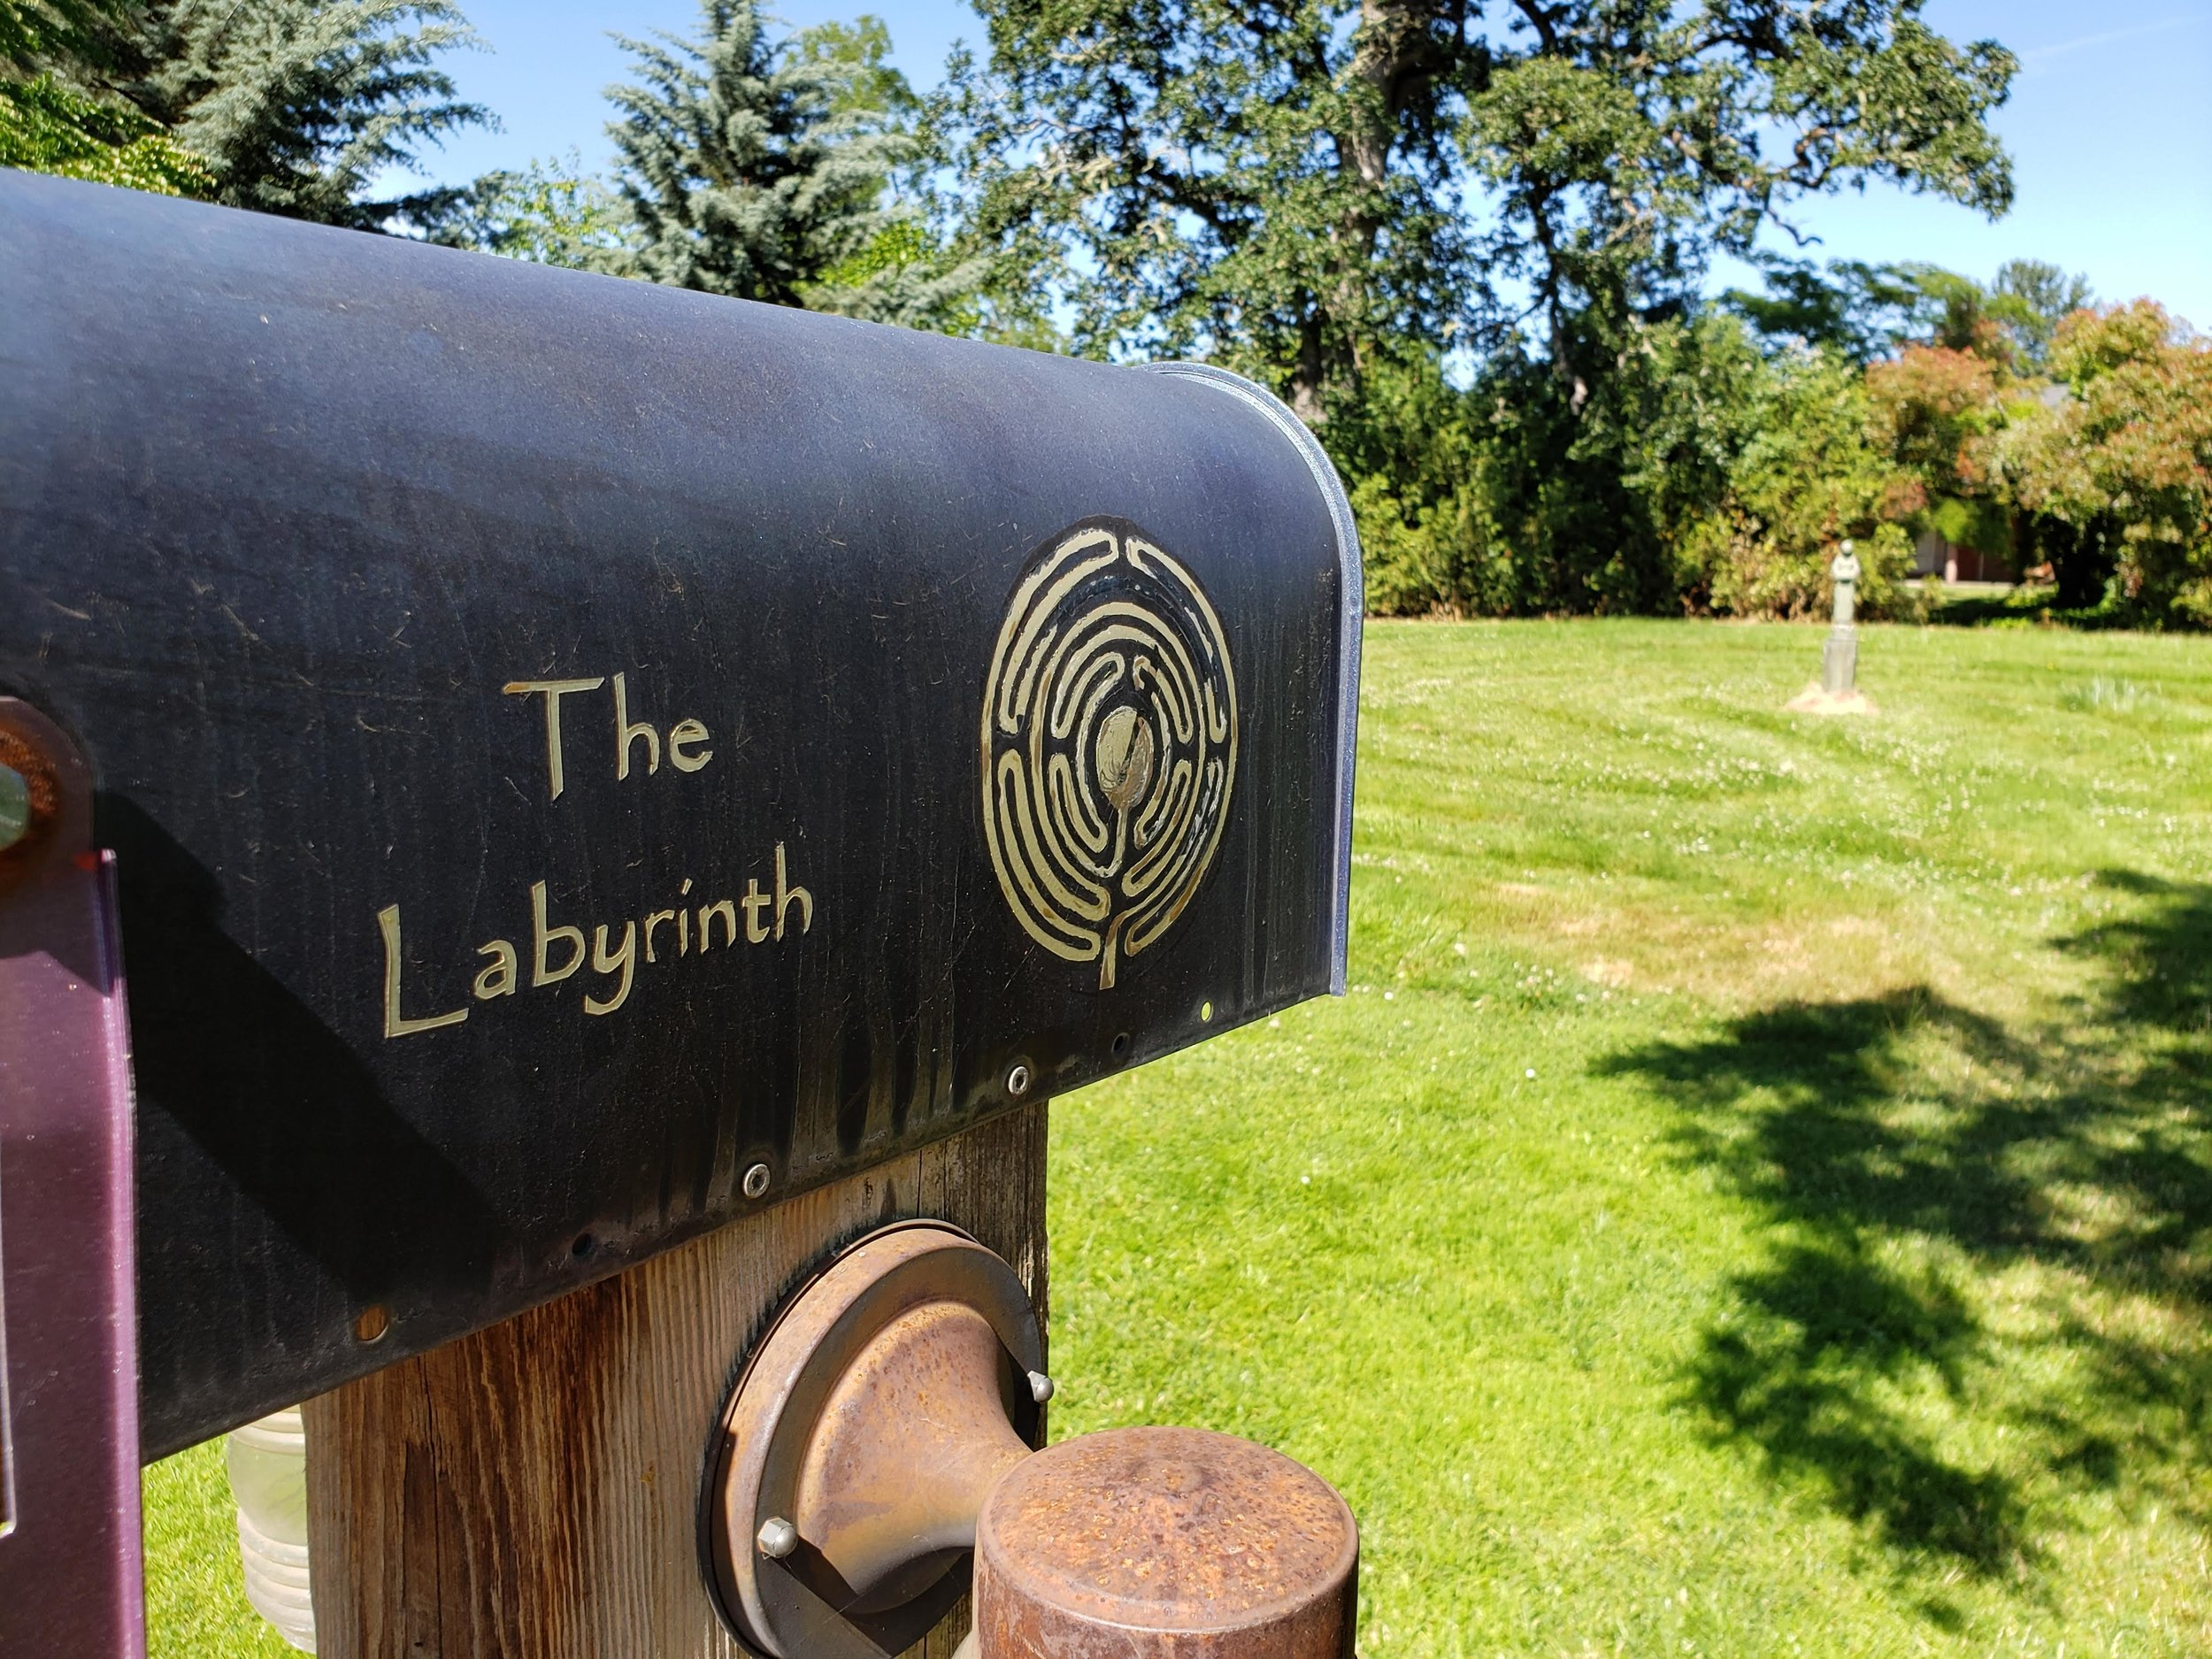 The labyrinth: one of the dog-friendly outdoor spaces at The Village Green